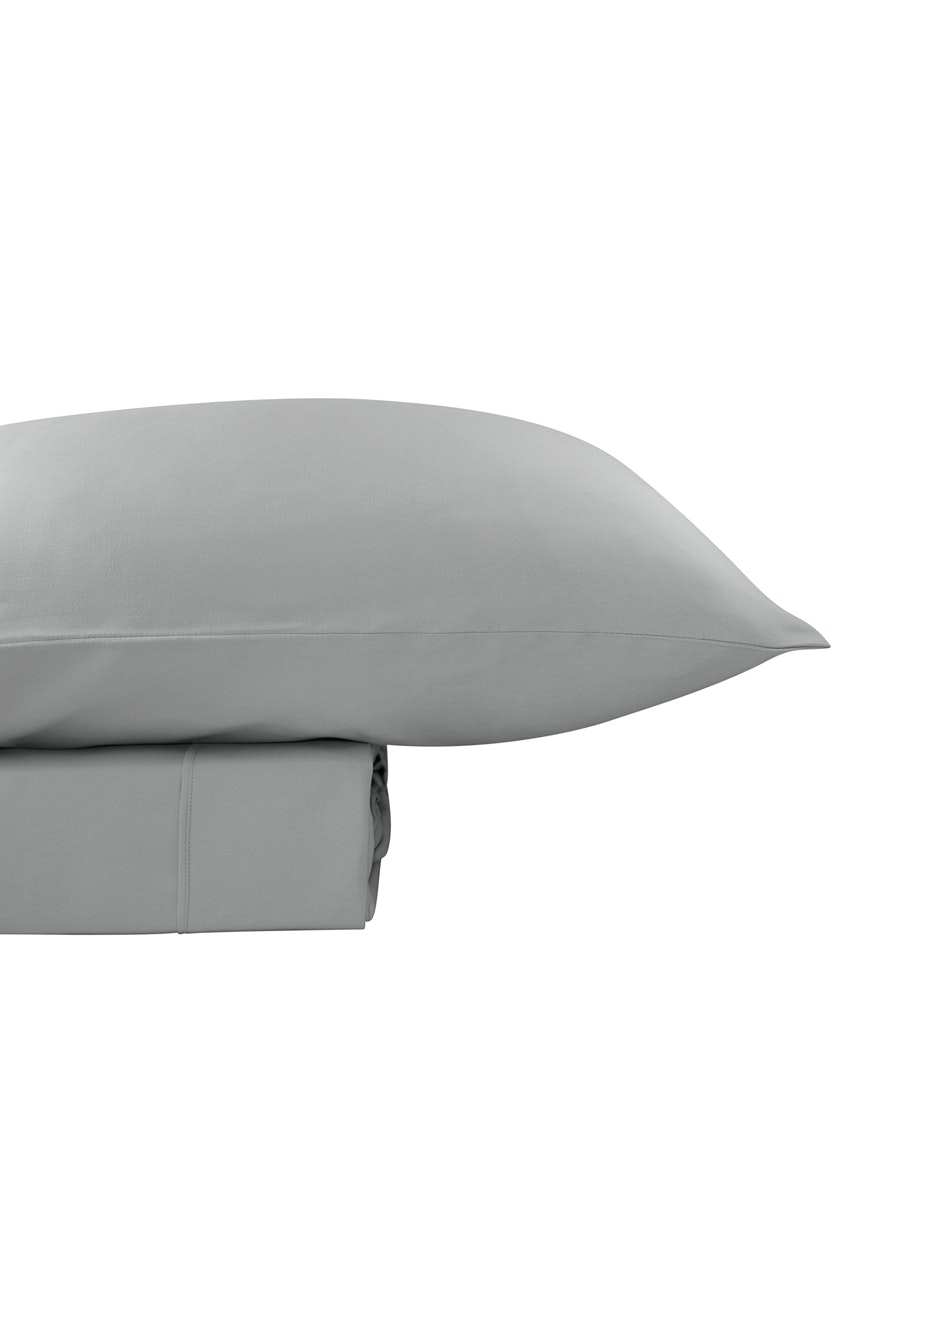 Thermal Flannel Sheet Sets - Glacier - Double Bed